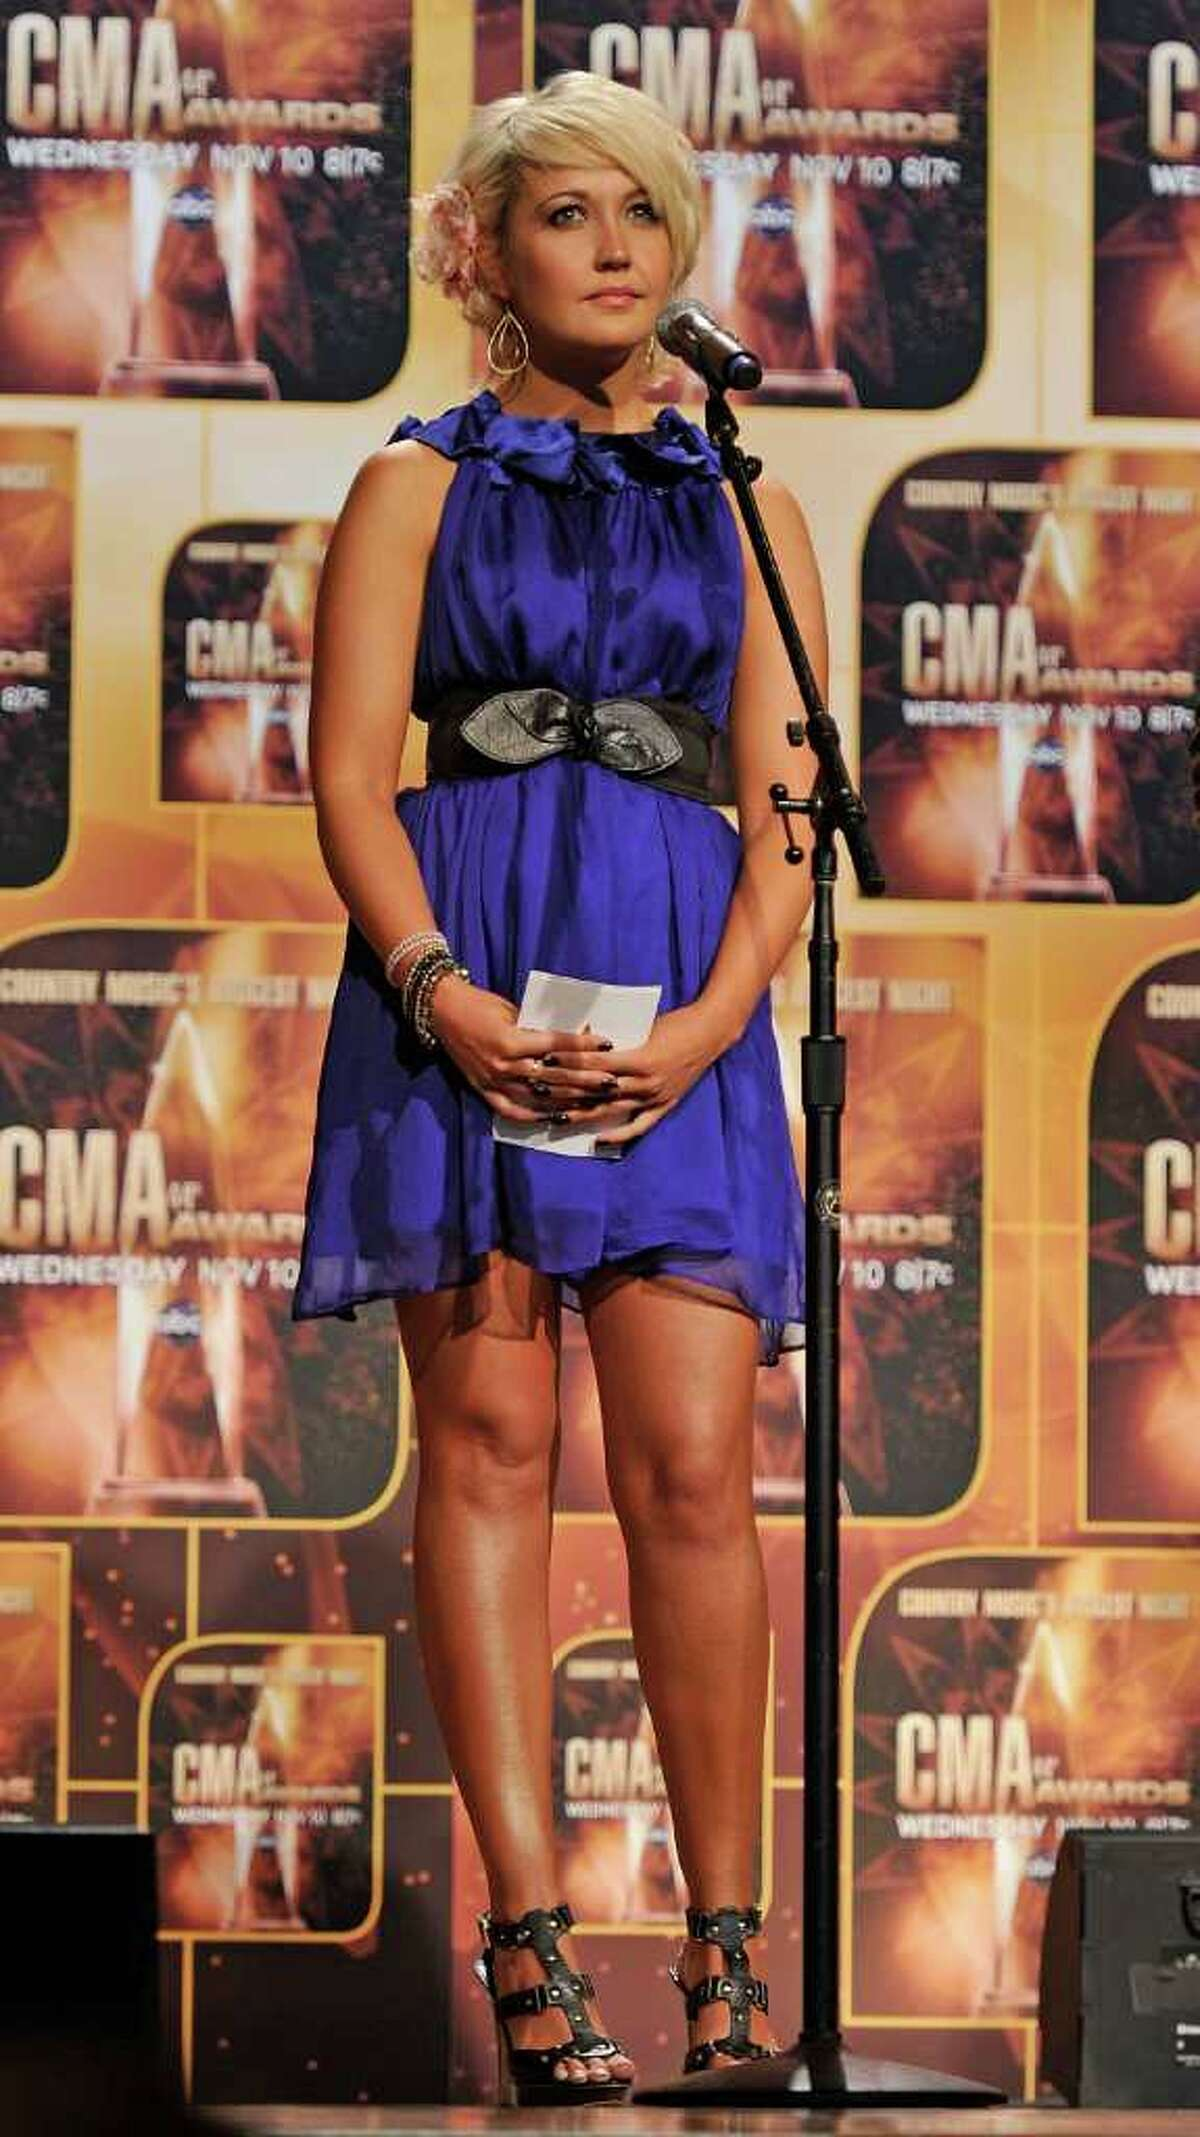 NASHVILLE, TN - AUGUST 31: Meghan Linsey of the band Steel Magnolia announce nominees for the 44th Annual CMA Awards at the Ryman Auditorium on August 31, 2010 in Nashville, Tennessee. (Photo by Frederick Breedon/Getty Images) *** Local Caption *** Meghan Linsey